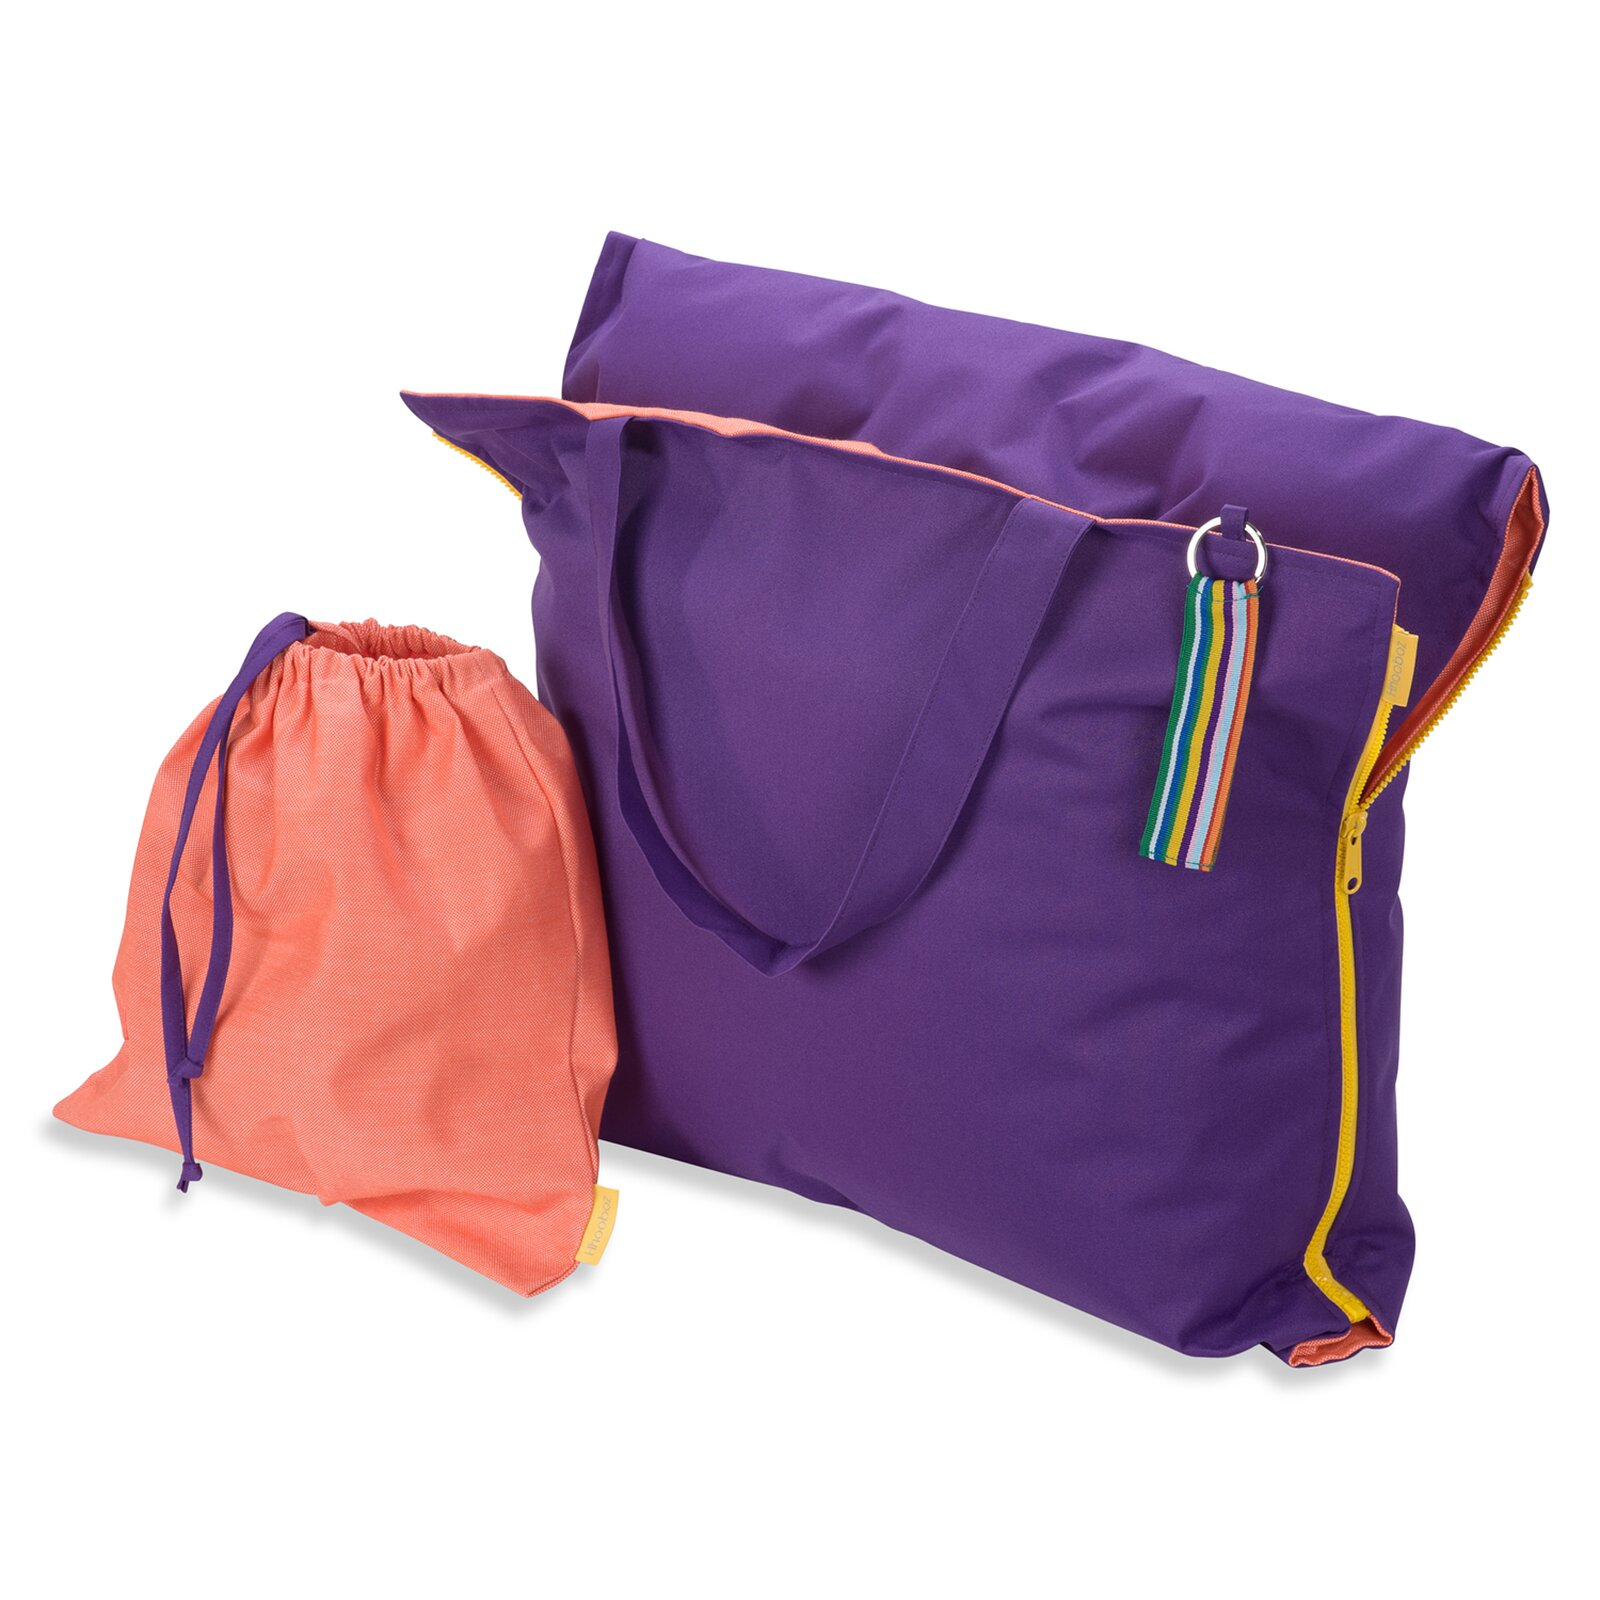 Hhooboz Pillowbag L lila-orange